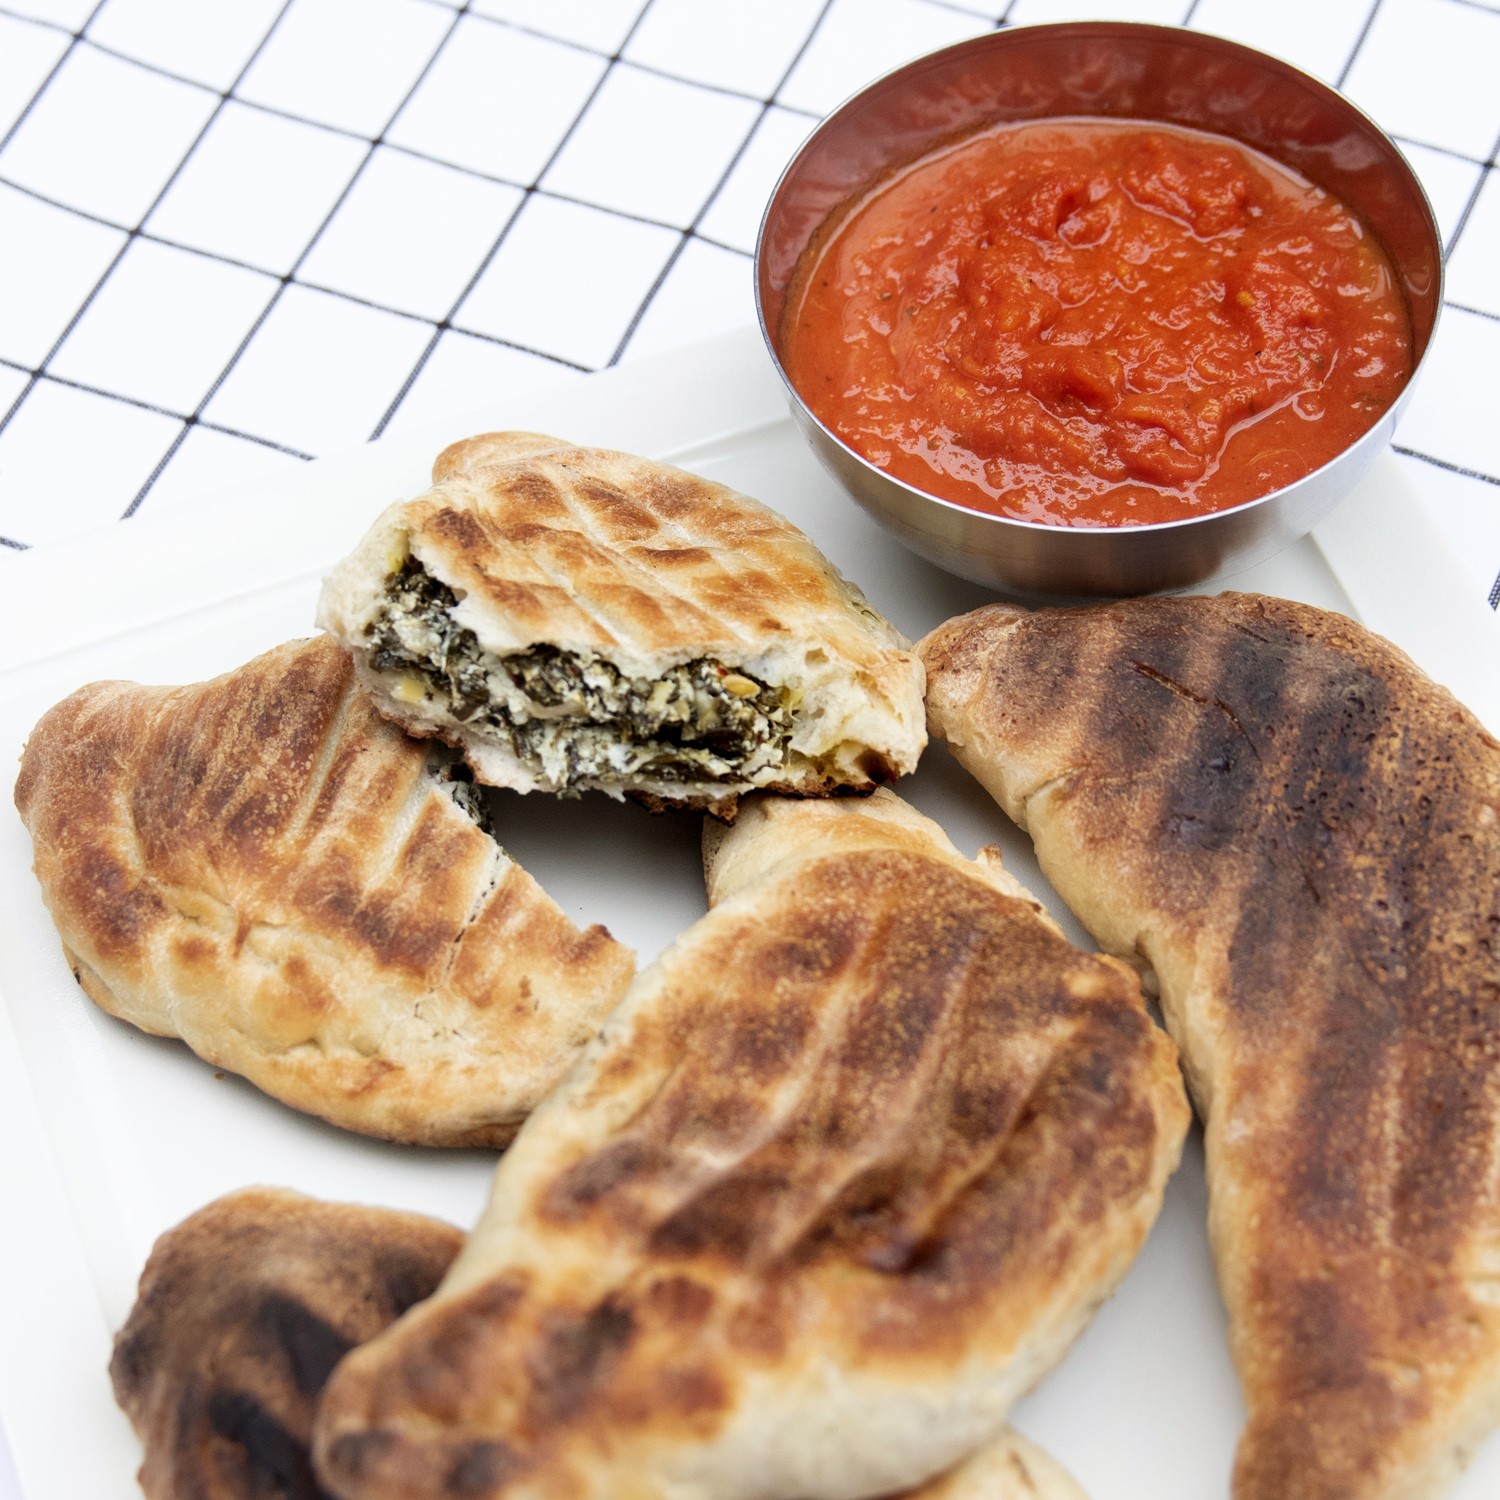 Grilled Spinach Artichoke Calzones